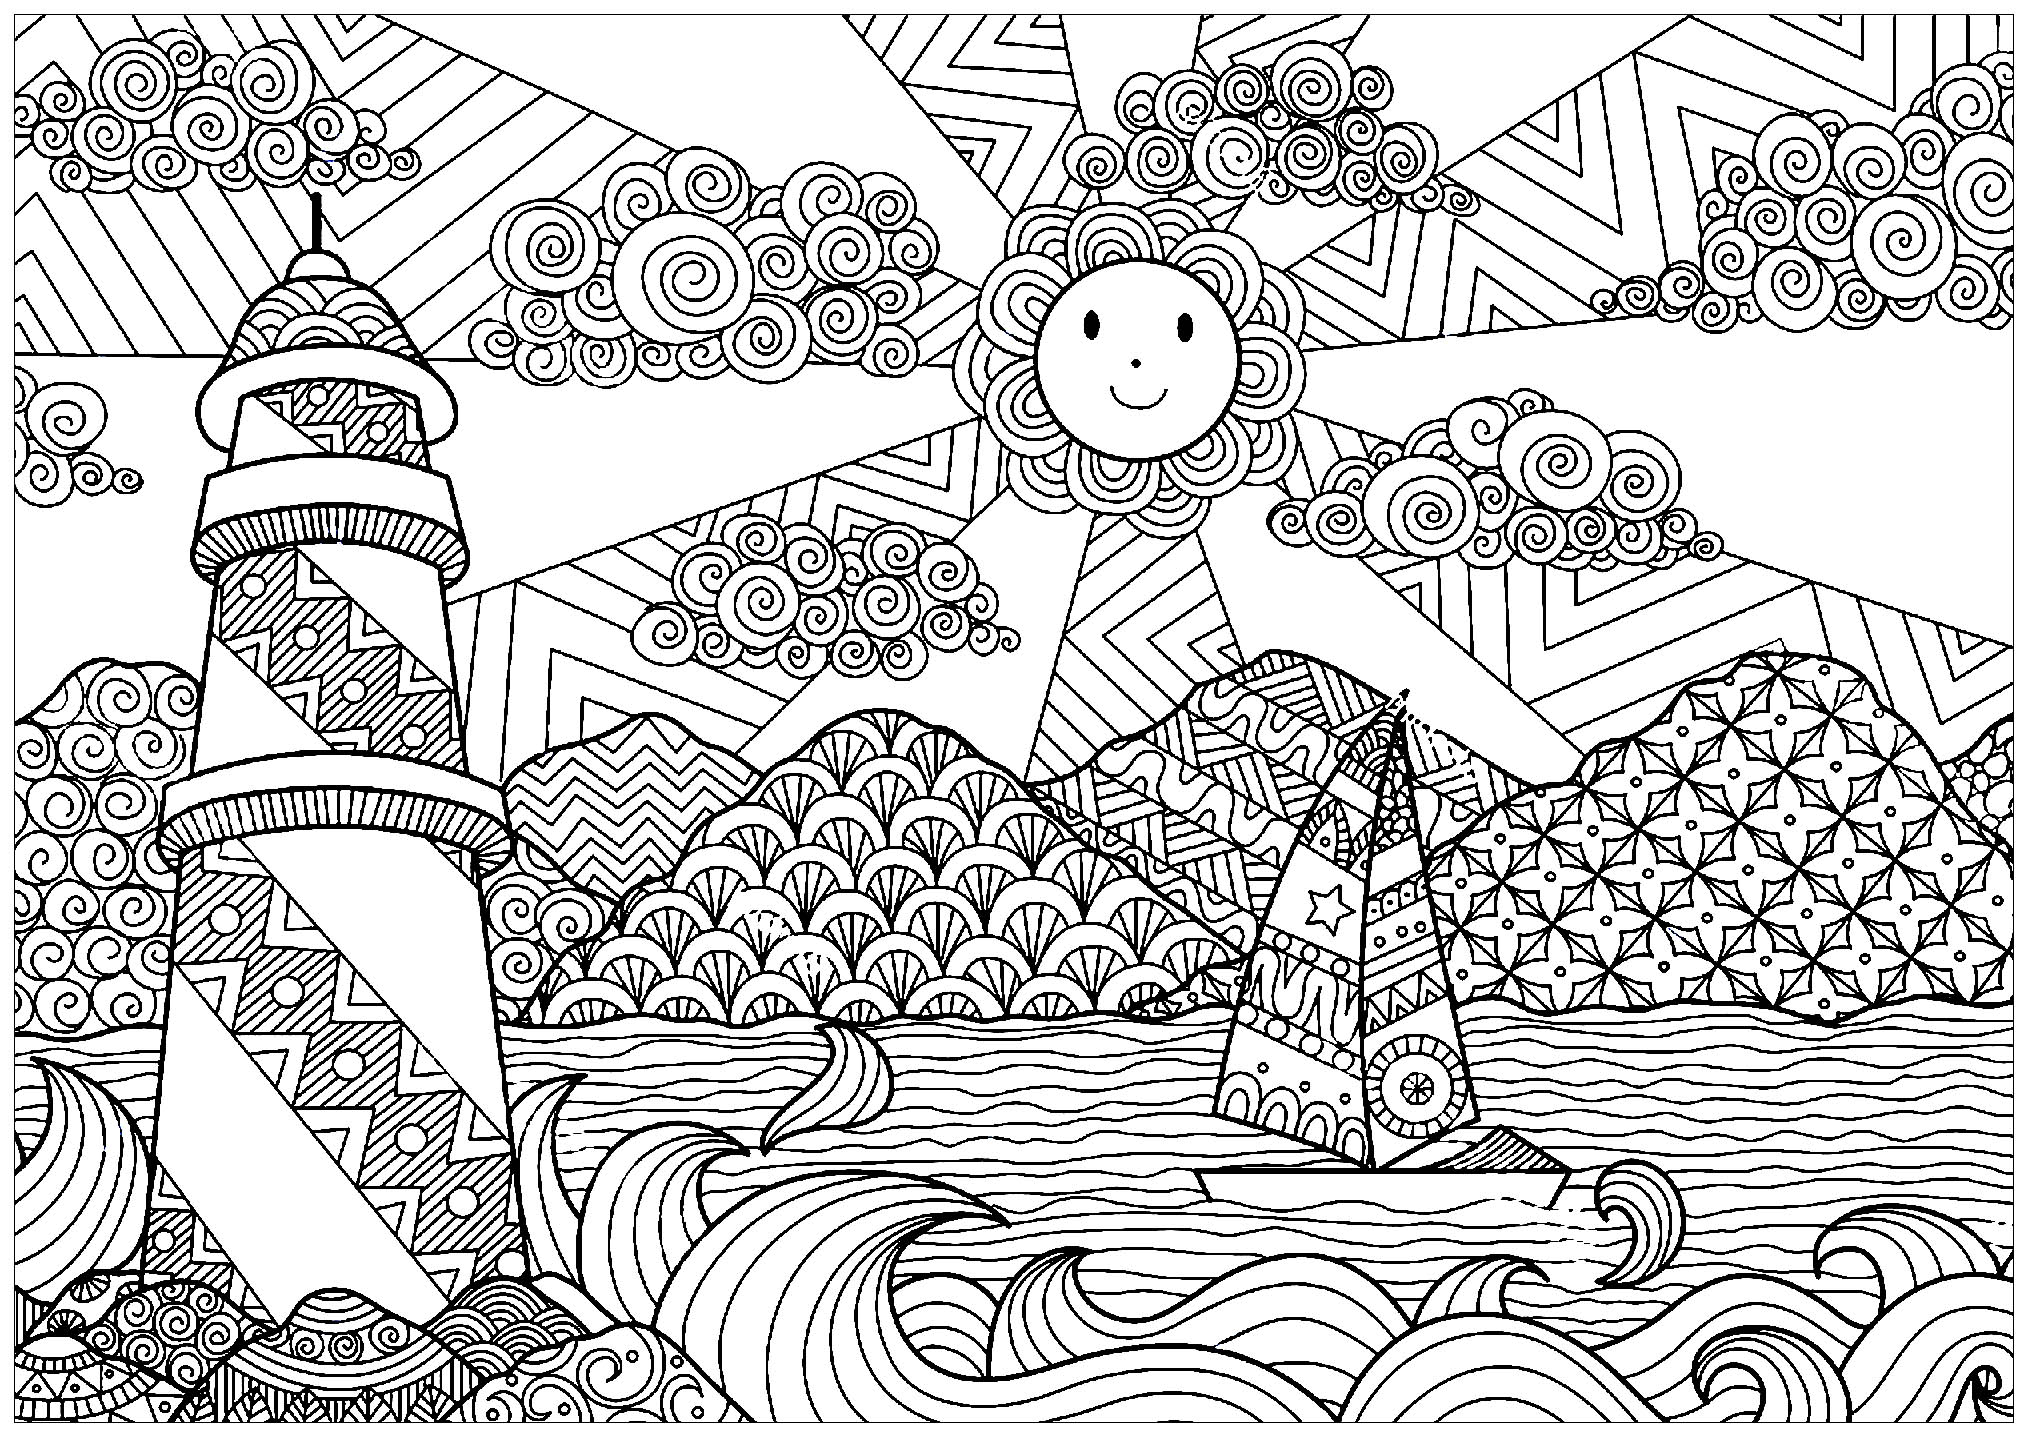 cendre coloring pages - photo#41